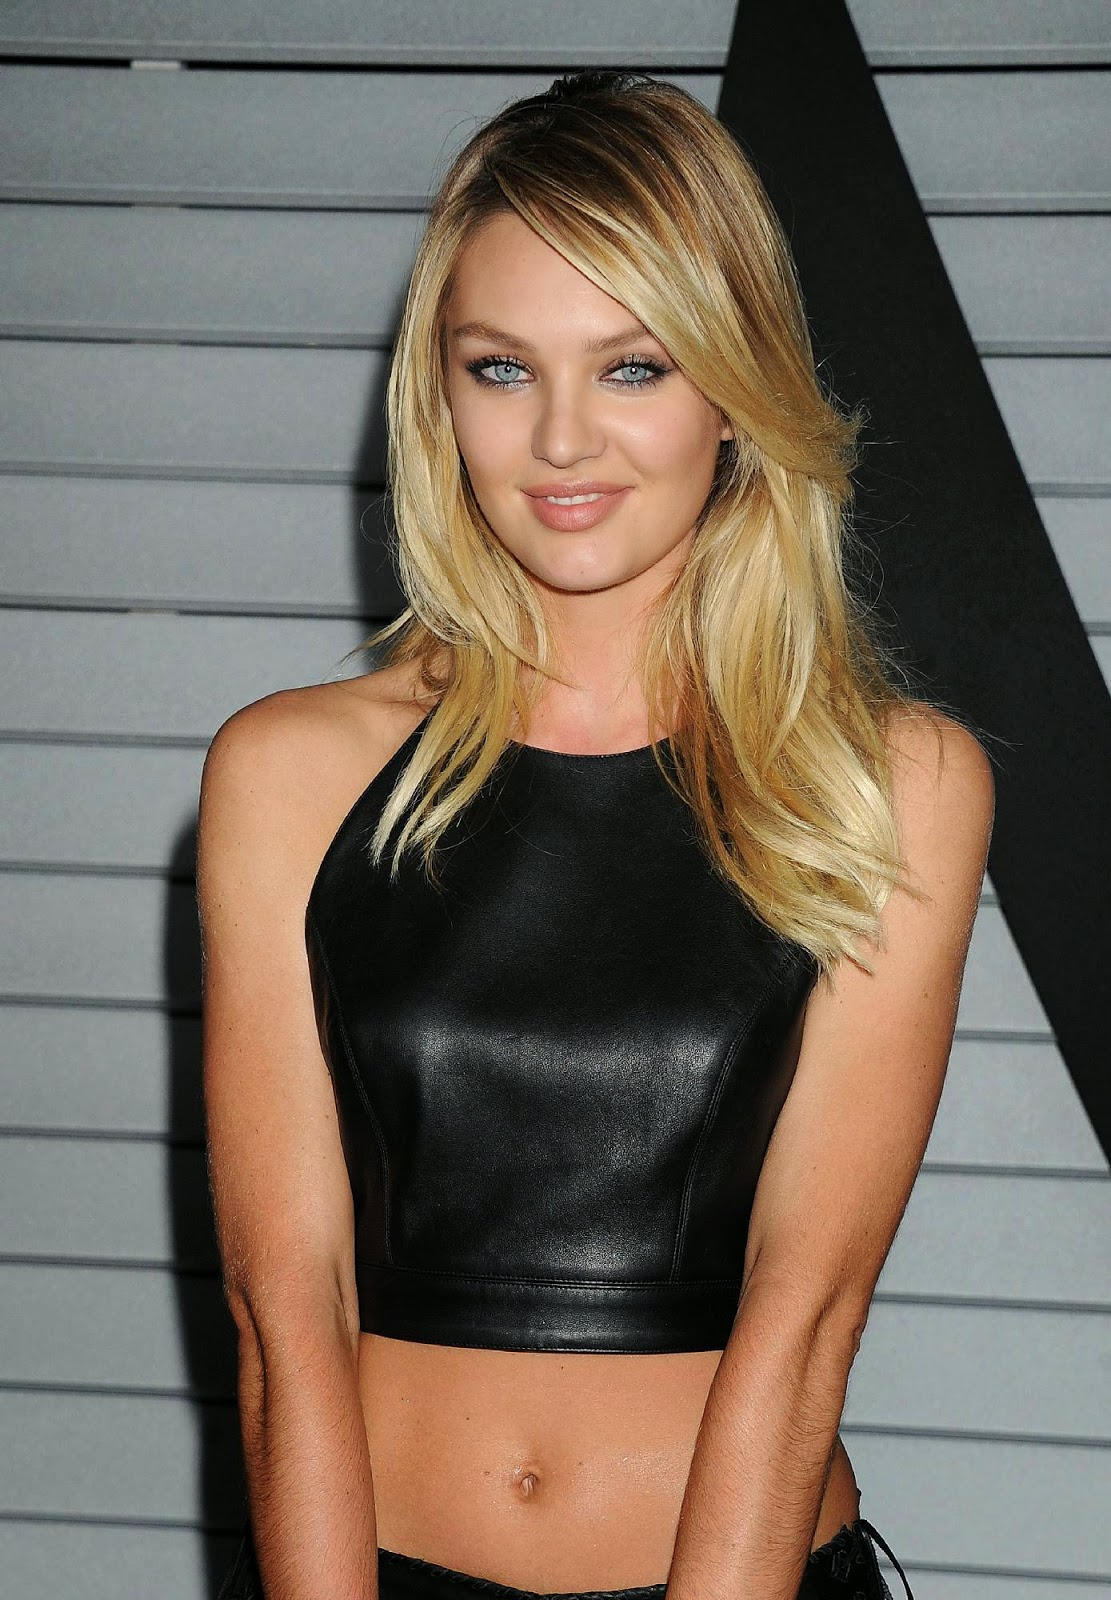 Candice Swanepoel Hot Celebrity in Sexy Black Leather Jeans and Top